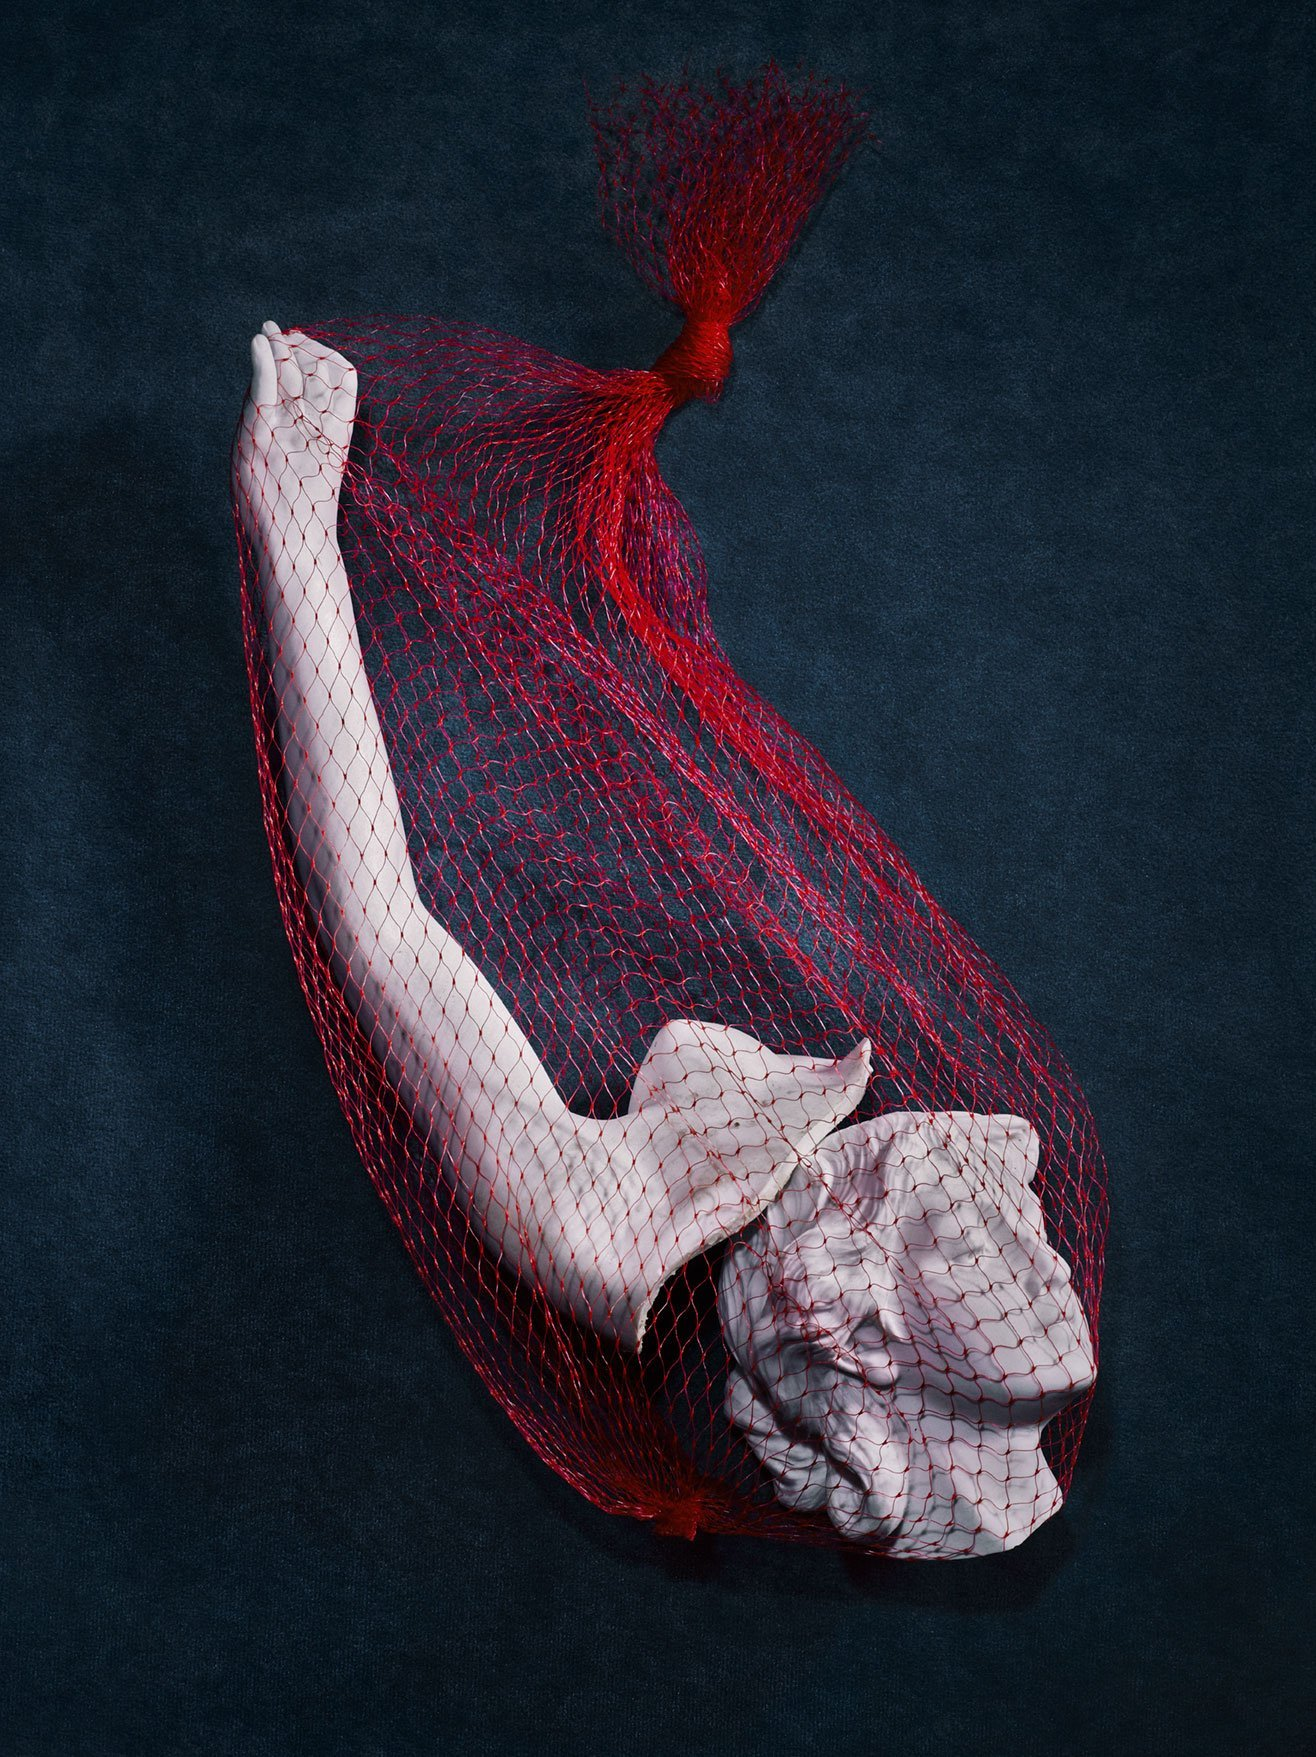 Sculpture in red netting for Romance Journal Issue 02 resistance. Publication design, art direction, print design by RoAndCo.